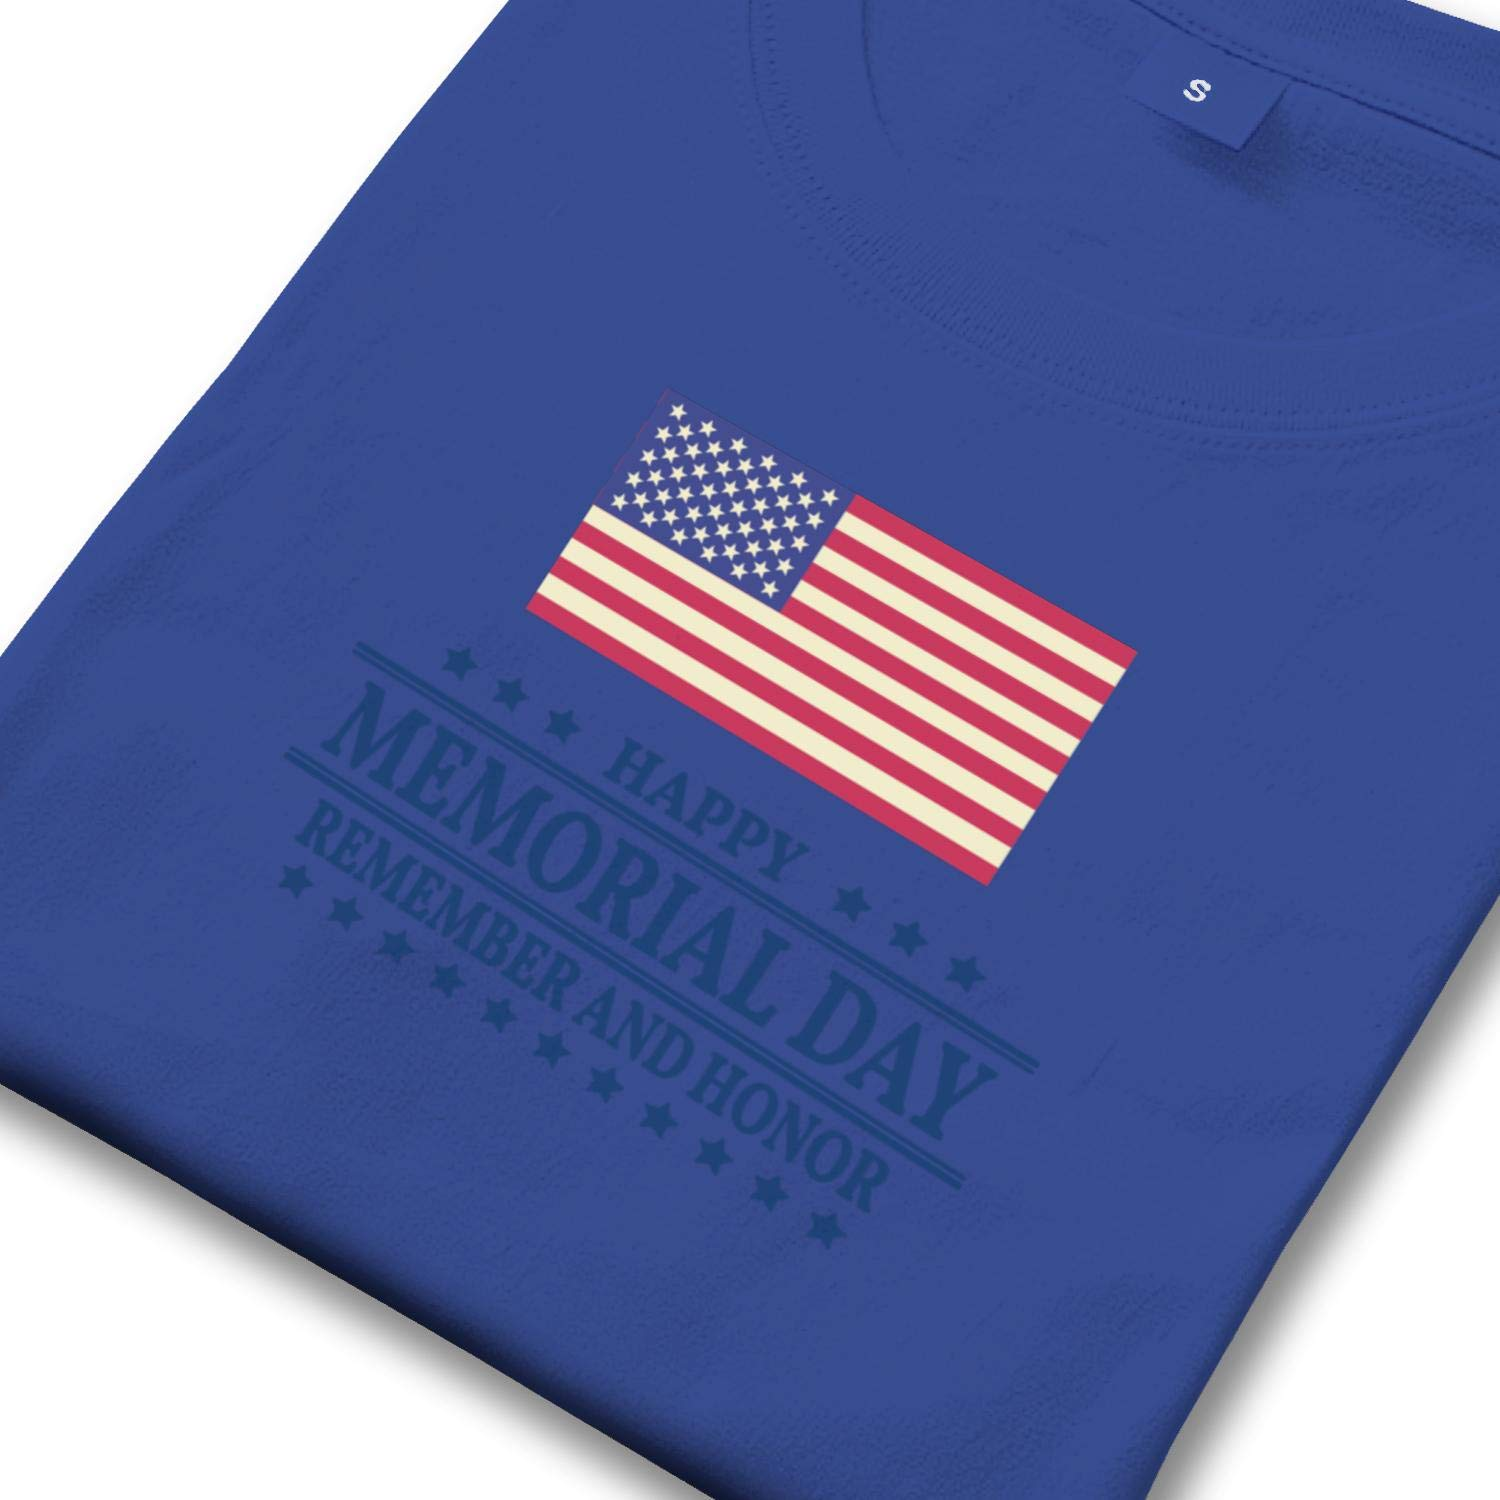 ZJKVBA Happy Memorial Day Flag Remember Honor Mens Short-Sleeves Awesome Loose-Fit T Shirt Awesome Tee for Men